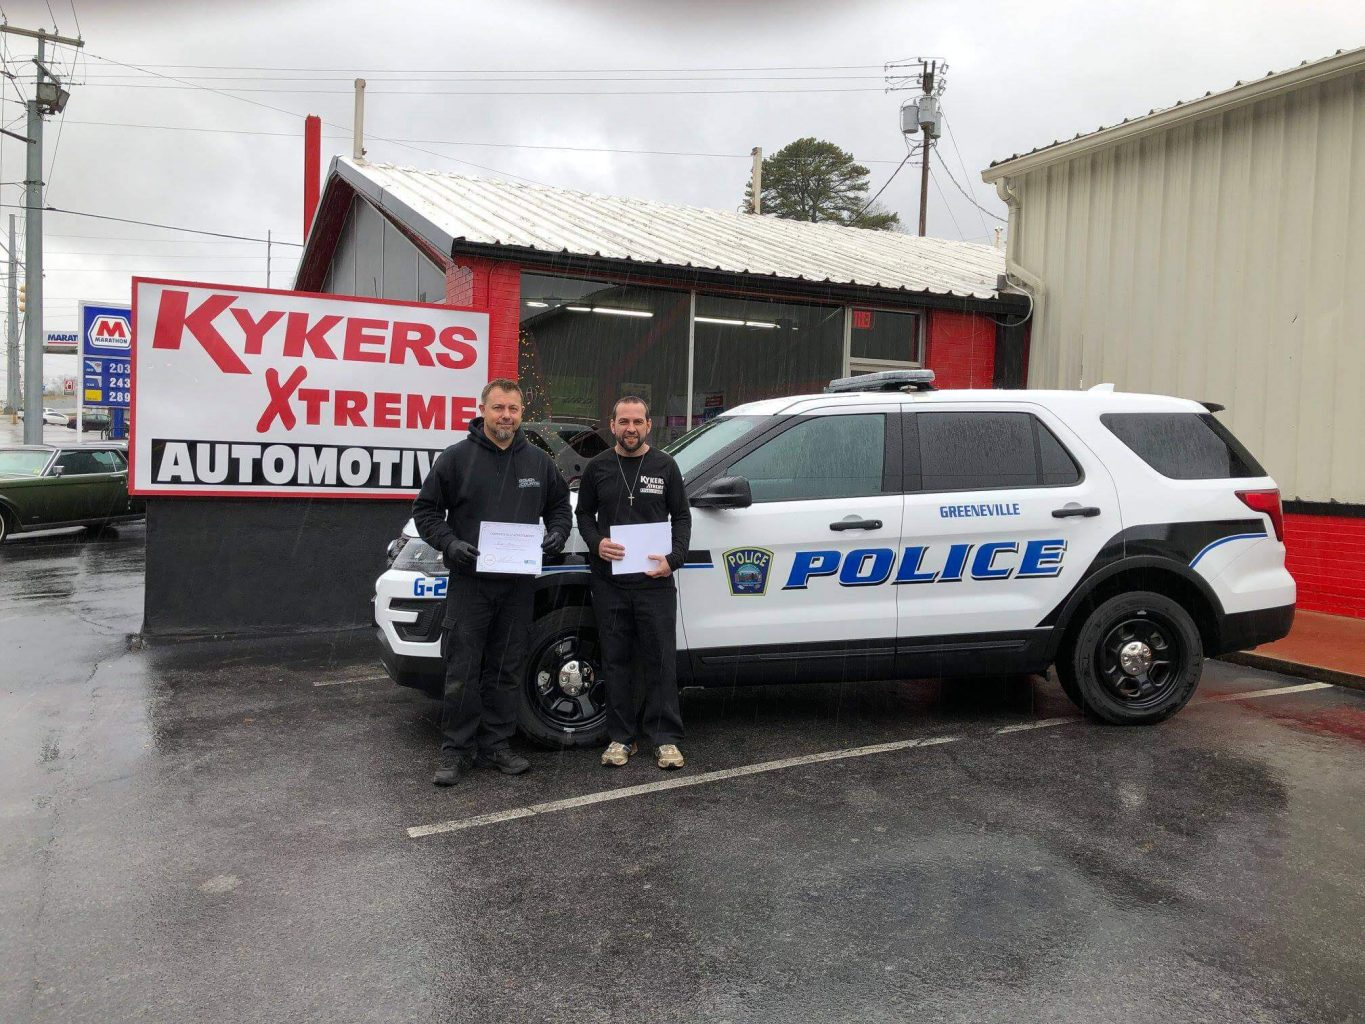 Kykers Xtreme Automotive newly trained propane autogas service techs pictured in front of propane autogas police vehicle